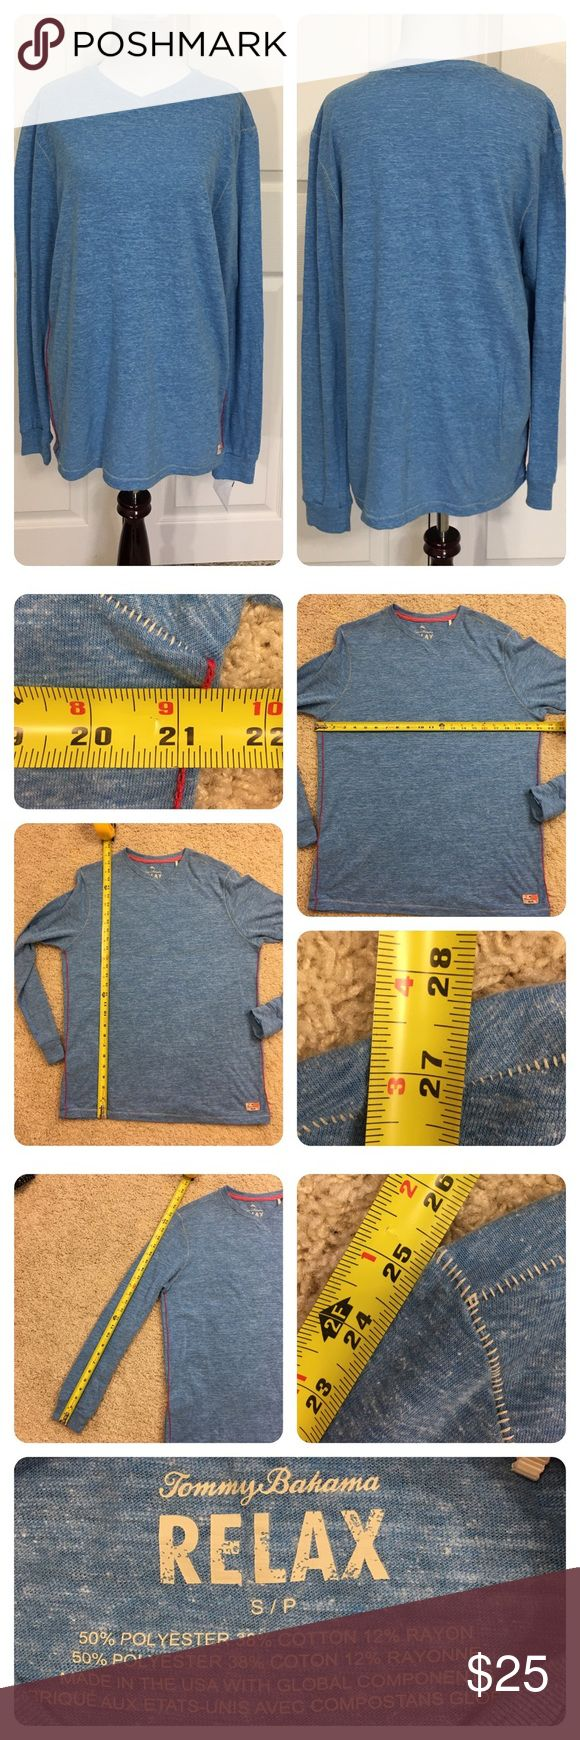 "NWT!  Tommy Bahama Relax long sleeve t-shirt New with tags from a secondary market store. Blue ""Relax"" long sleeve t-shirt. Soft and comfortable! Tommy Bahama Shirts Tees - Long Sleeve"